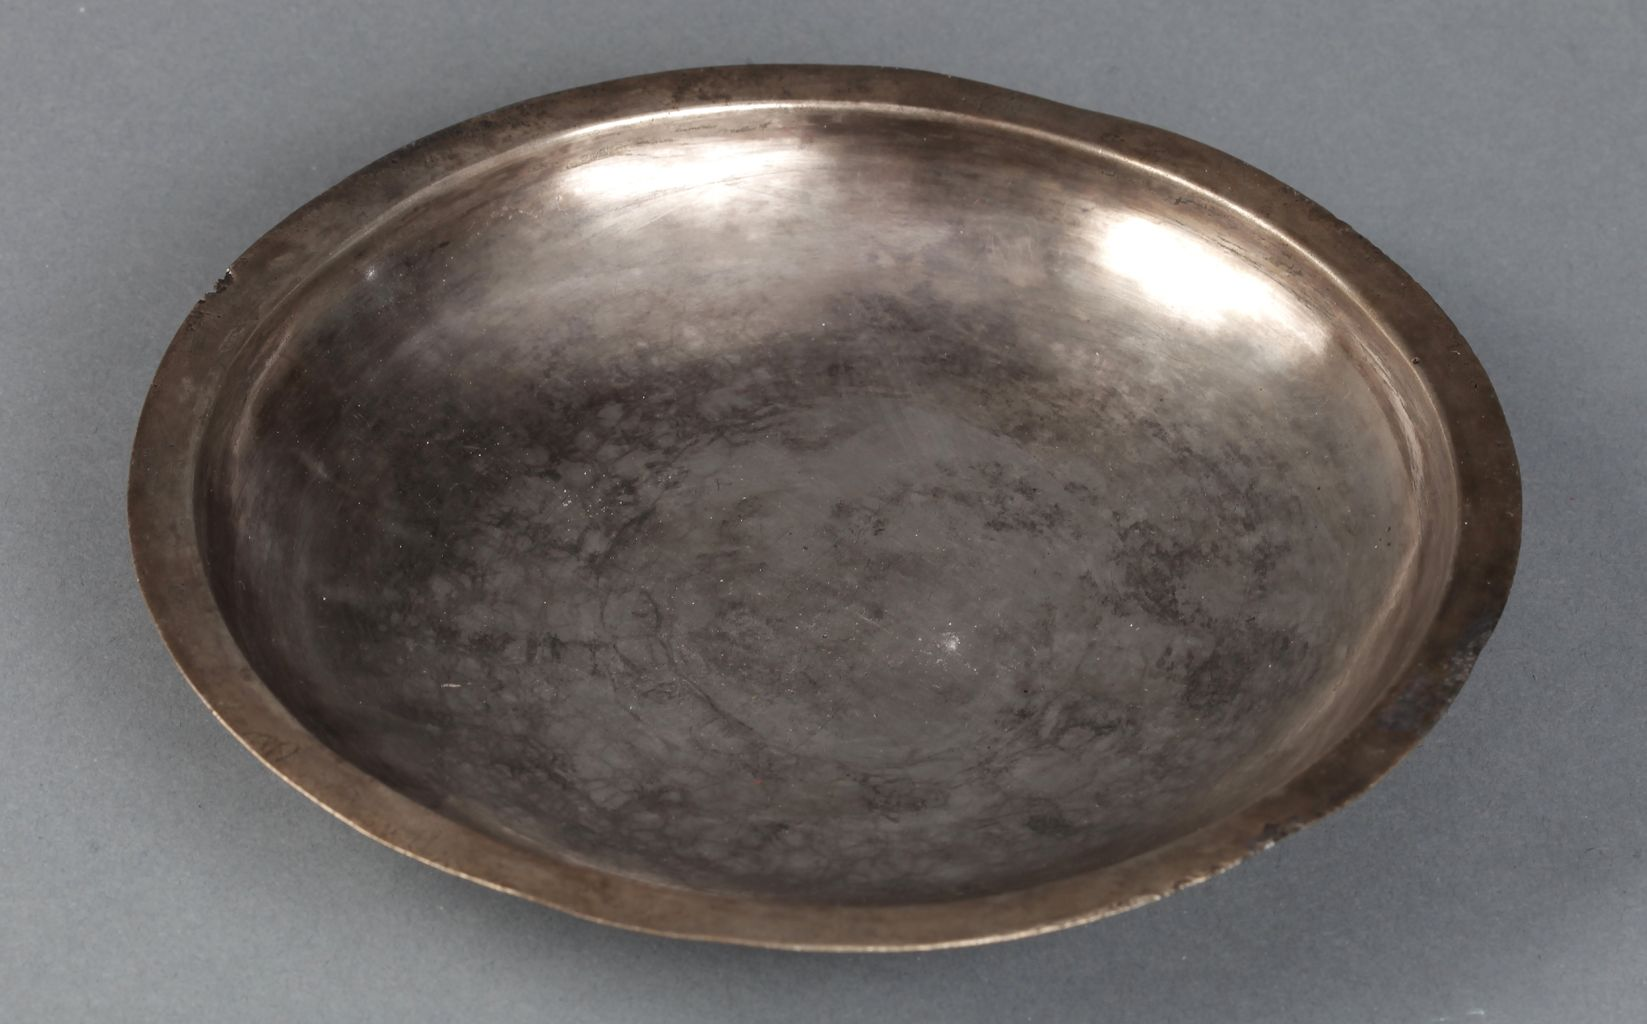 Shallow bowl with inscription